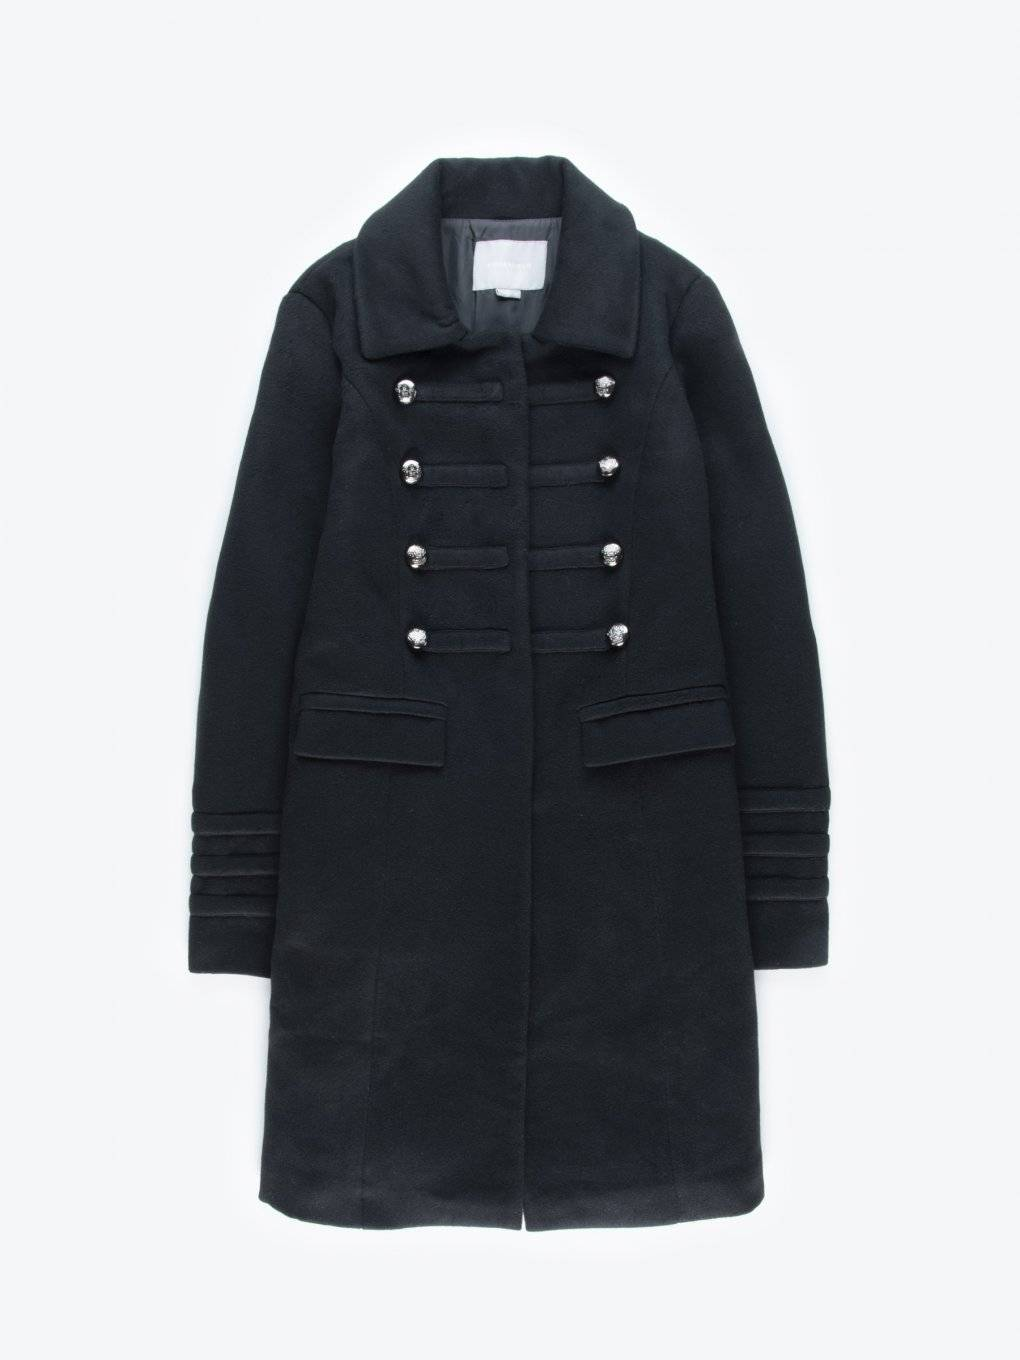 Double brested military coat